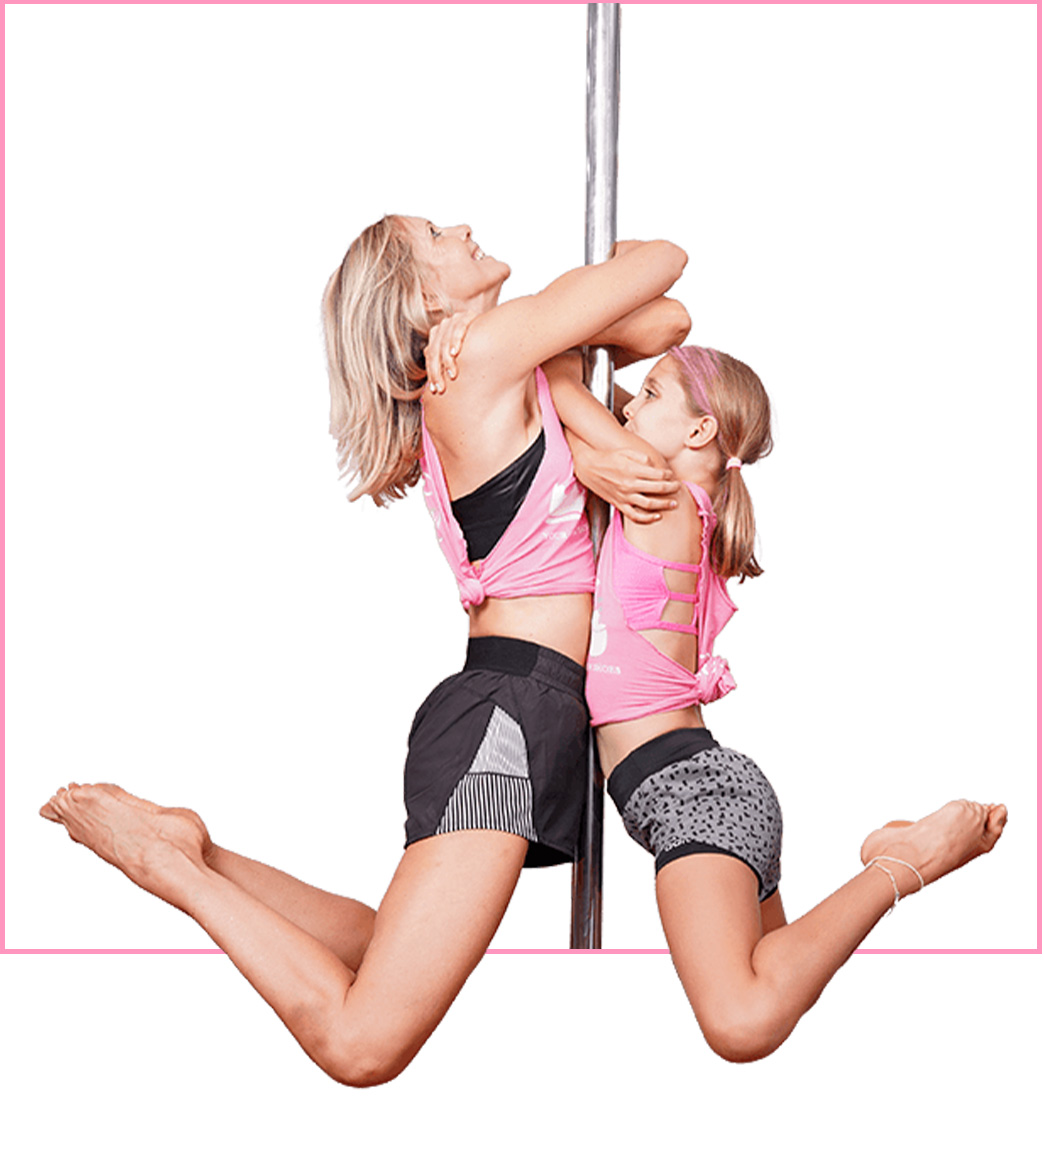 Picture of adult and child doing embrace pose on the pole